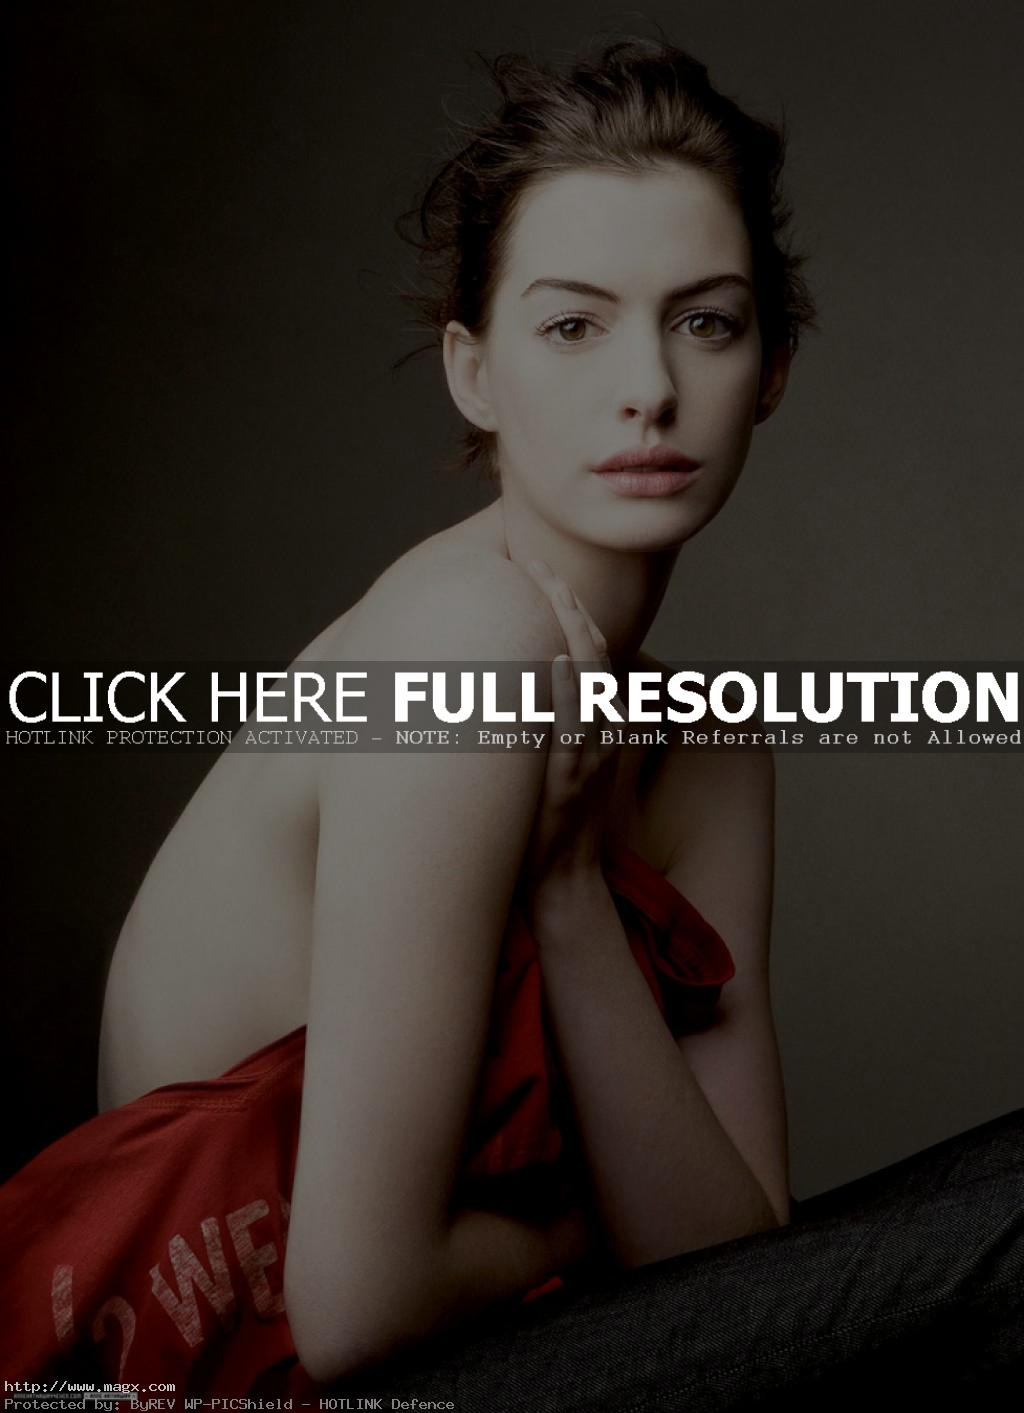 anne hathaway4 Anne Hathaway Biography and Hot Photos